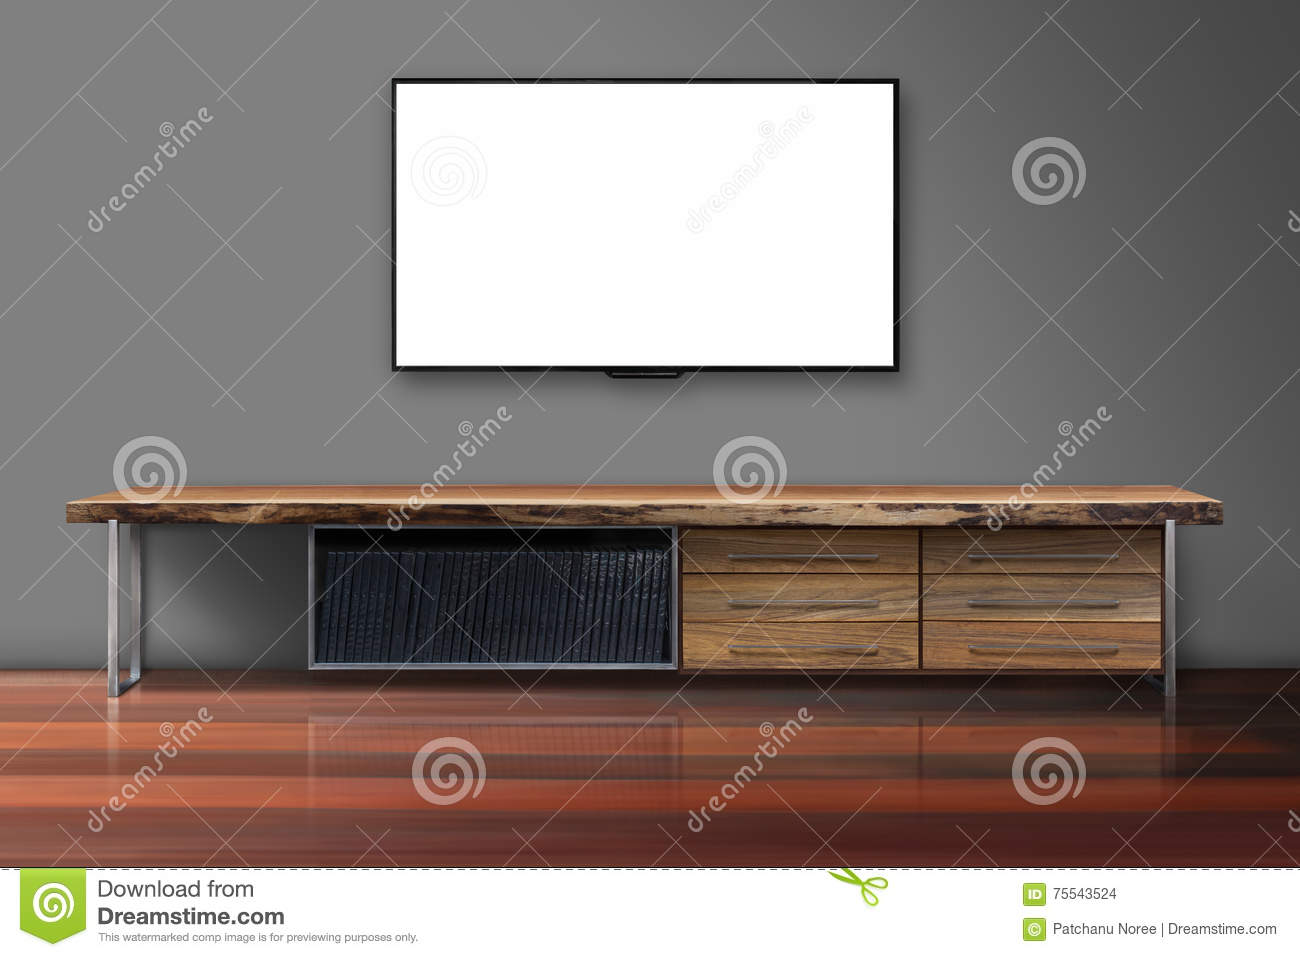 Blank screen tv on concrete wall with wooden table